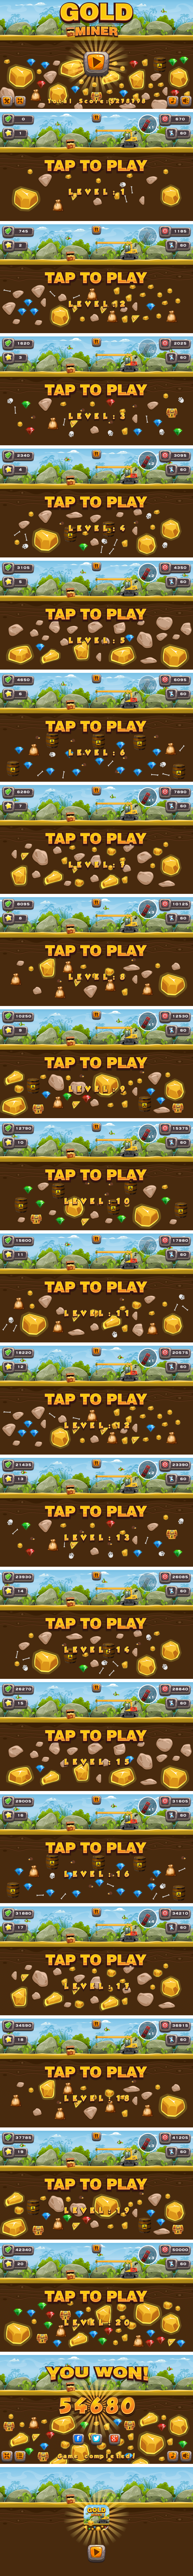 Gold Miner - HTML5 Game 20 Levels + Mobile Version! (Construct 3 | Construct 2 | Capx) - 3